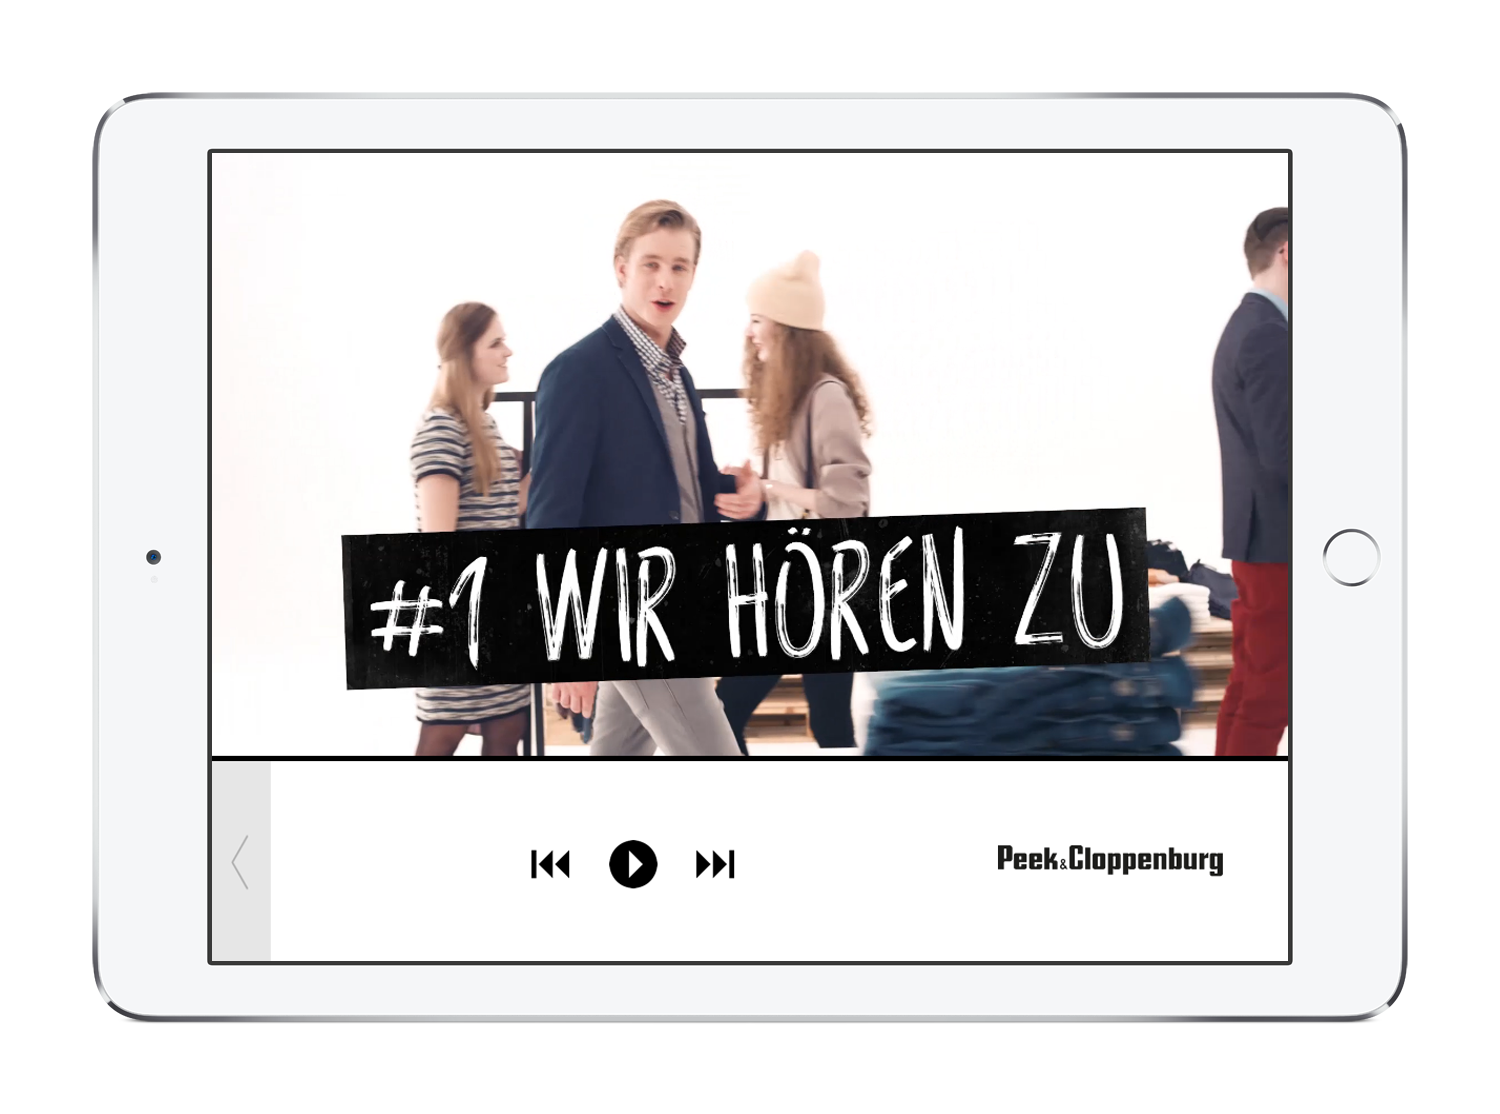 Messe-App: Video-Player